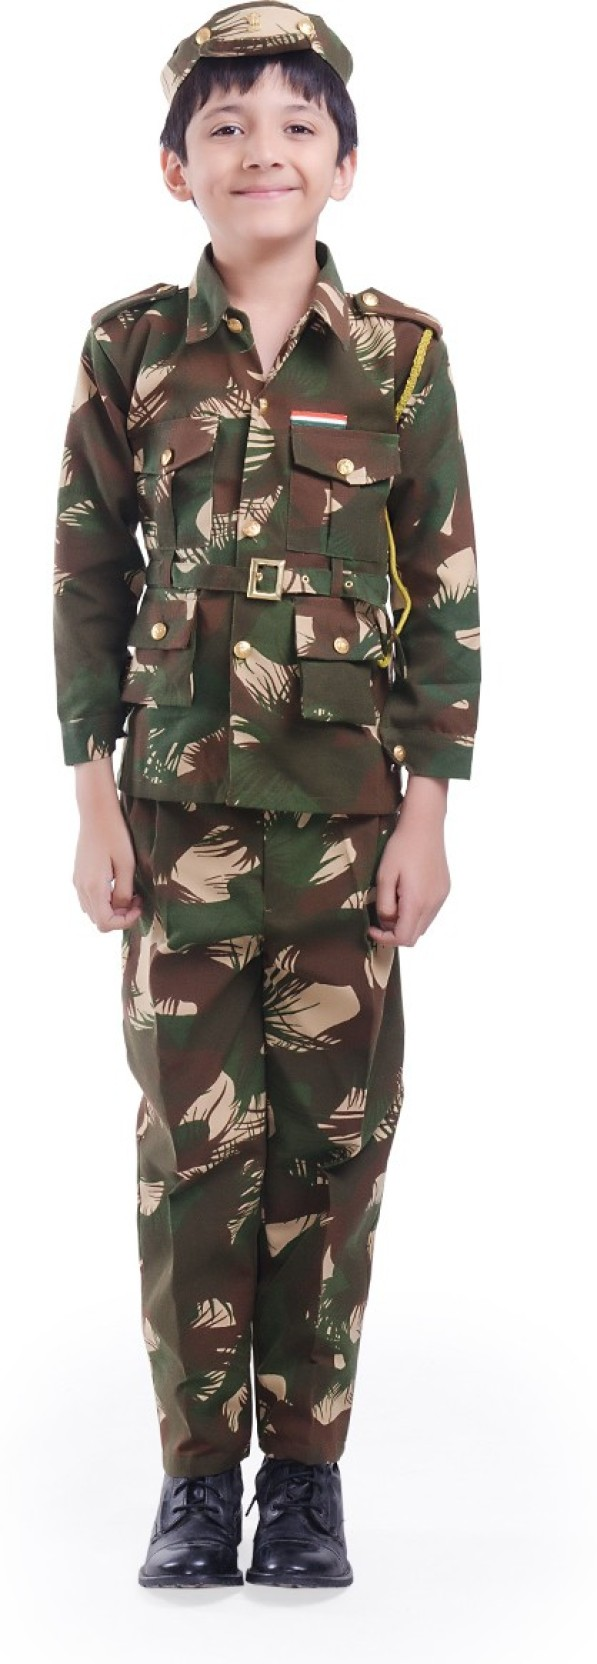 8db9c43804b Fancydresswale Army Kids Costume Wear Price in India - Buy ...